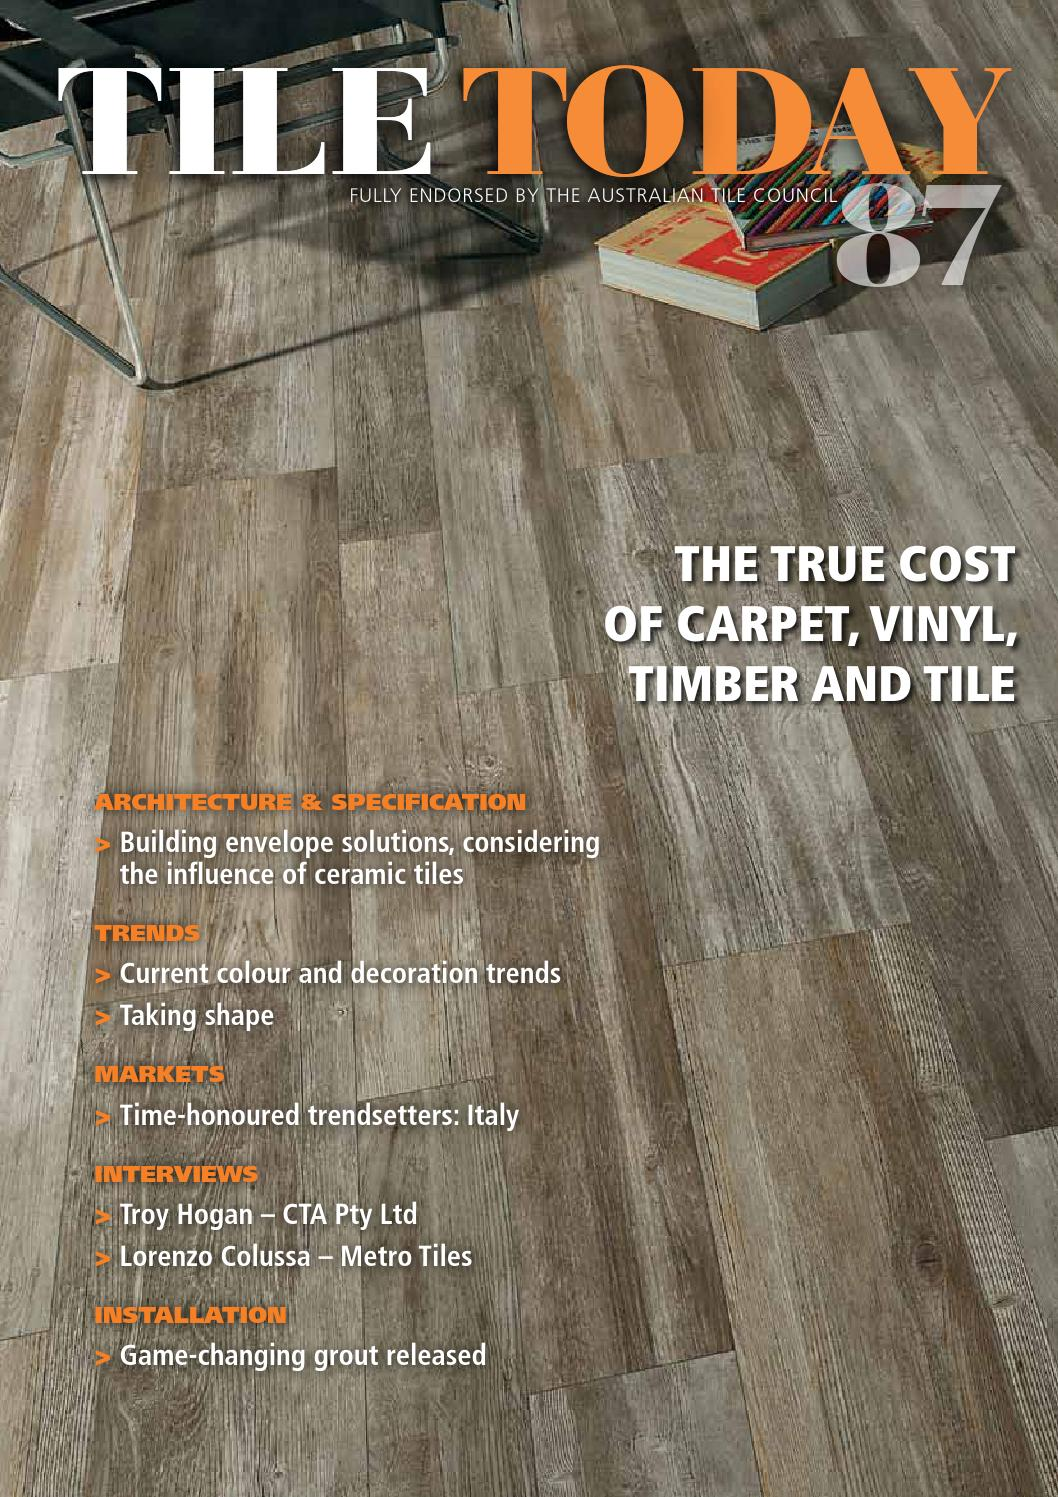 Tile today issue 87 2015 by elite publishing co pty ltd issuu dailygadgetfo Choice Image